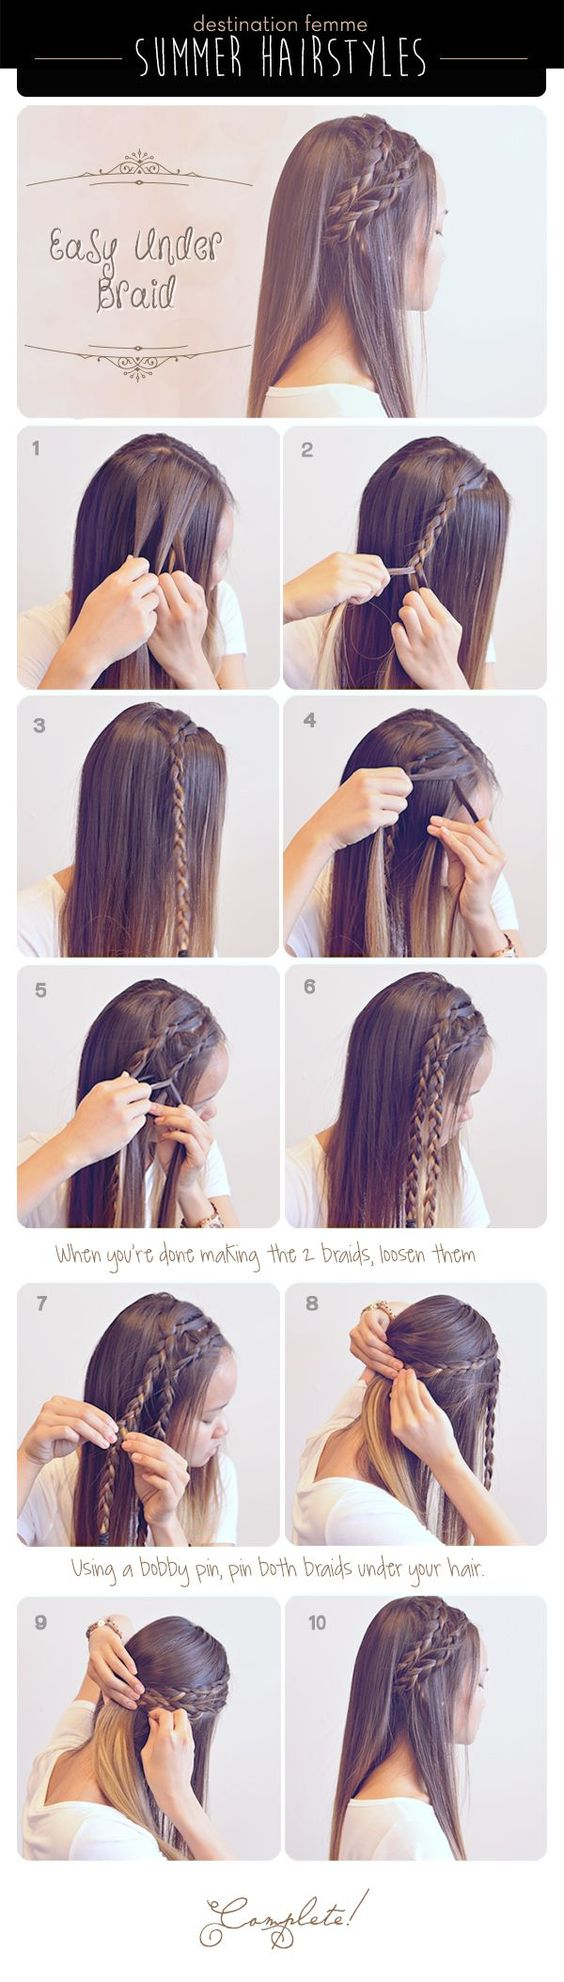 Easy Step by step hair tutorials for long hair